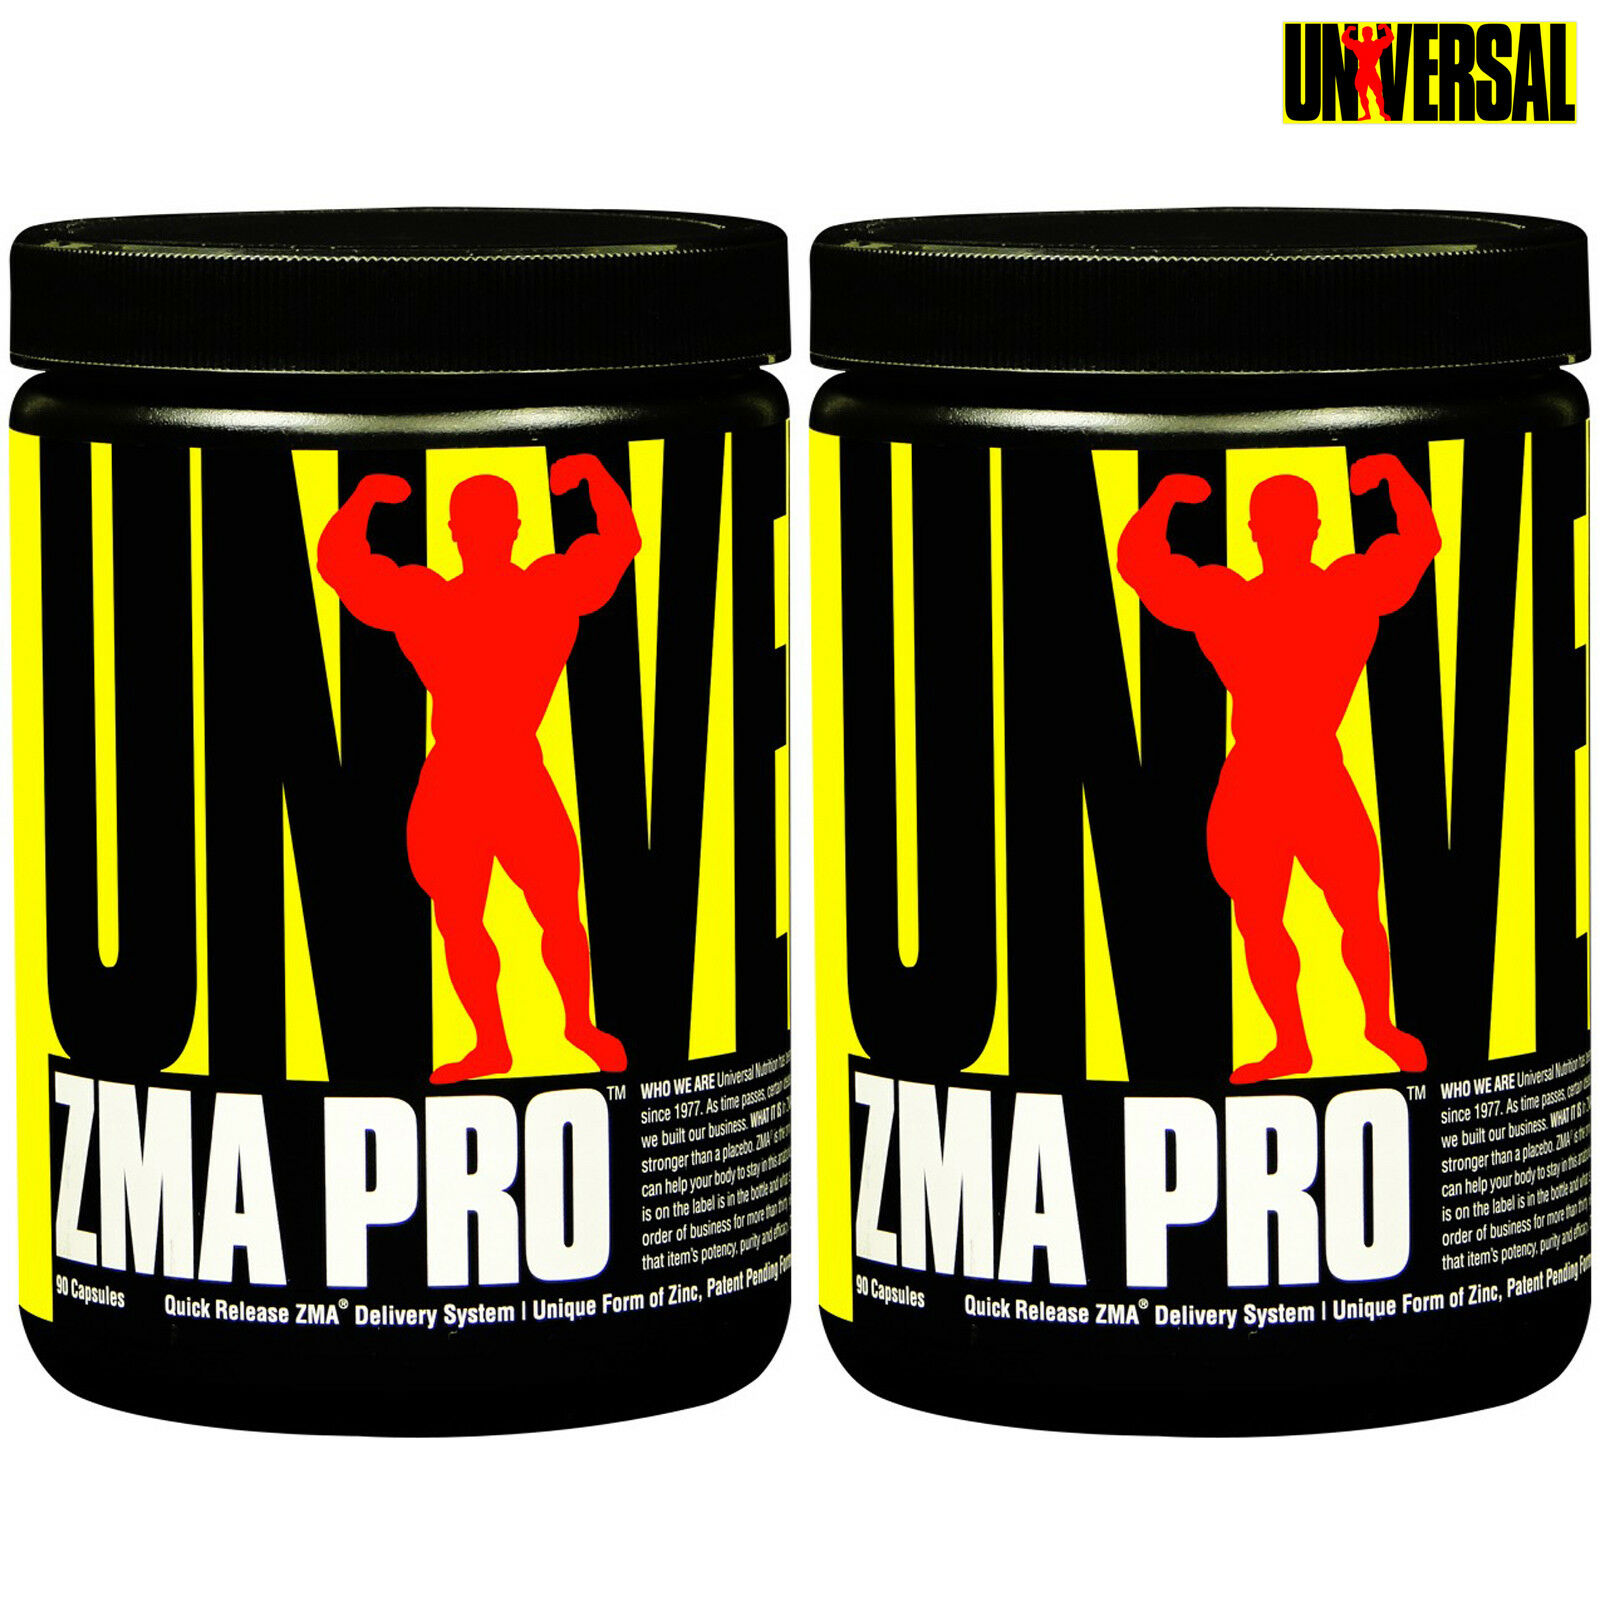 ZMA PRO 90 180 Anabolic & Recovery Pills - Male Testerone Support - Better Sleep